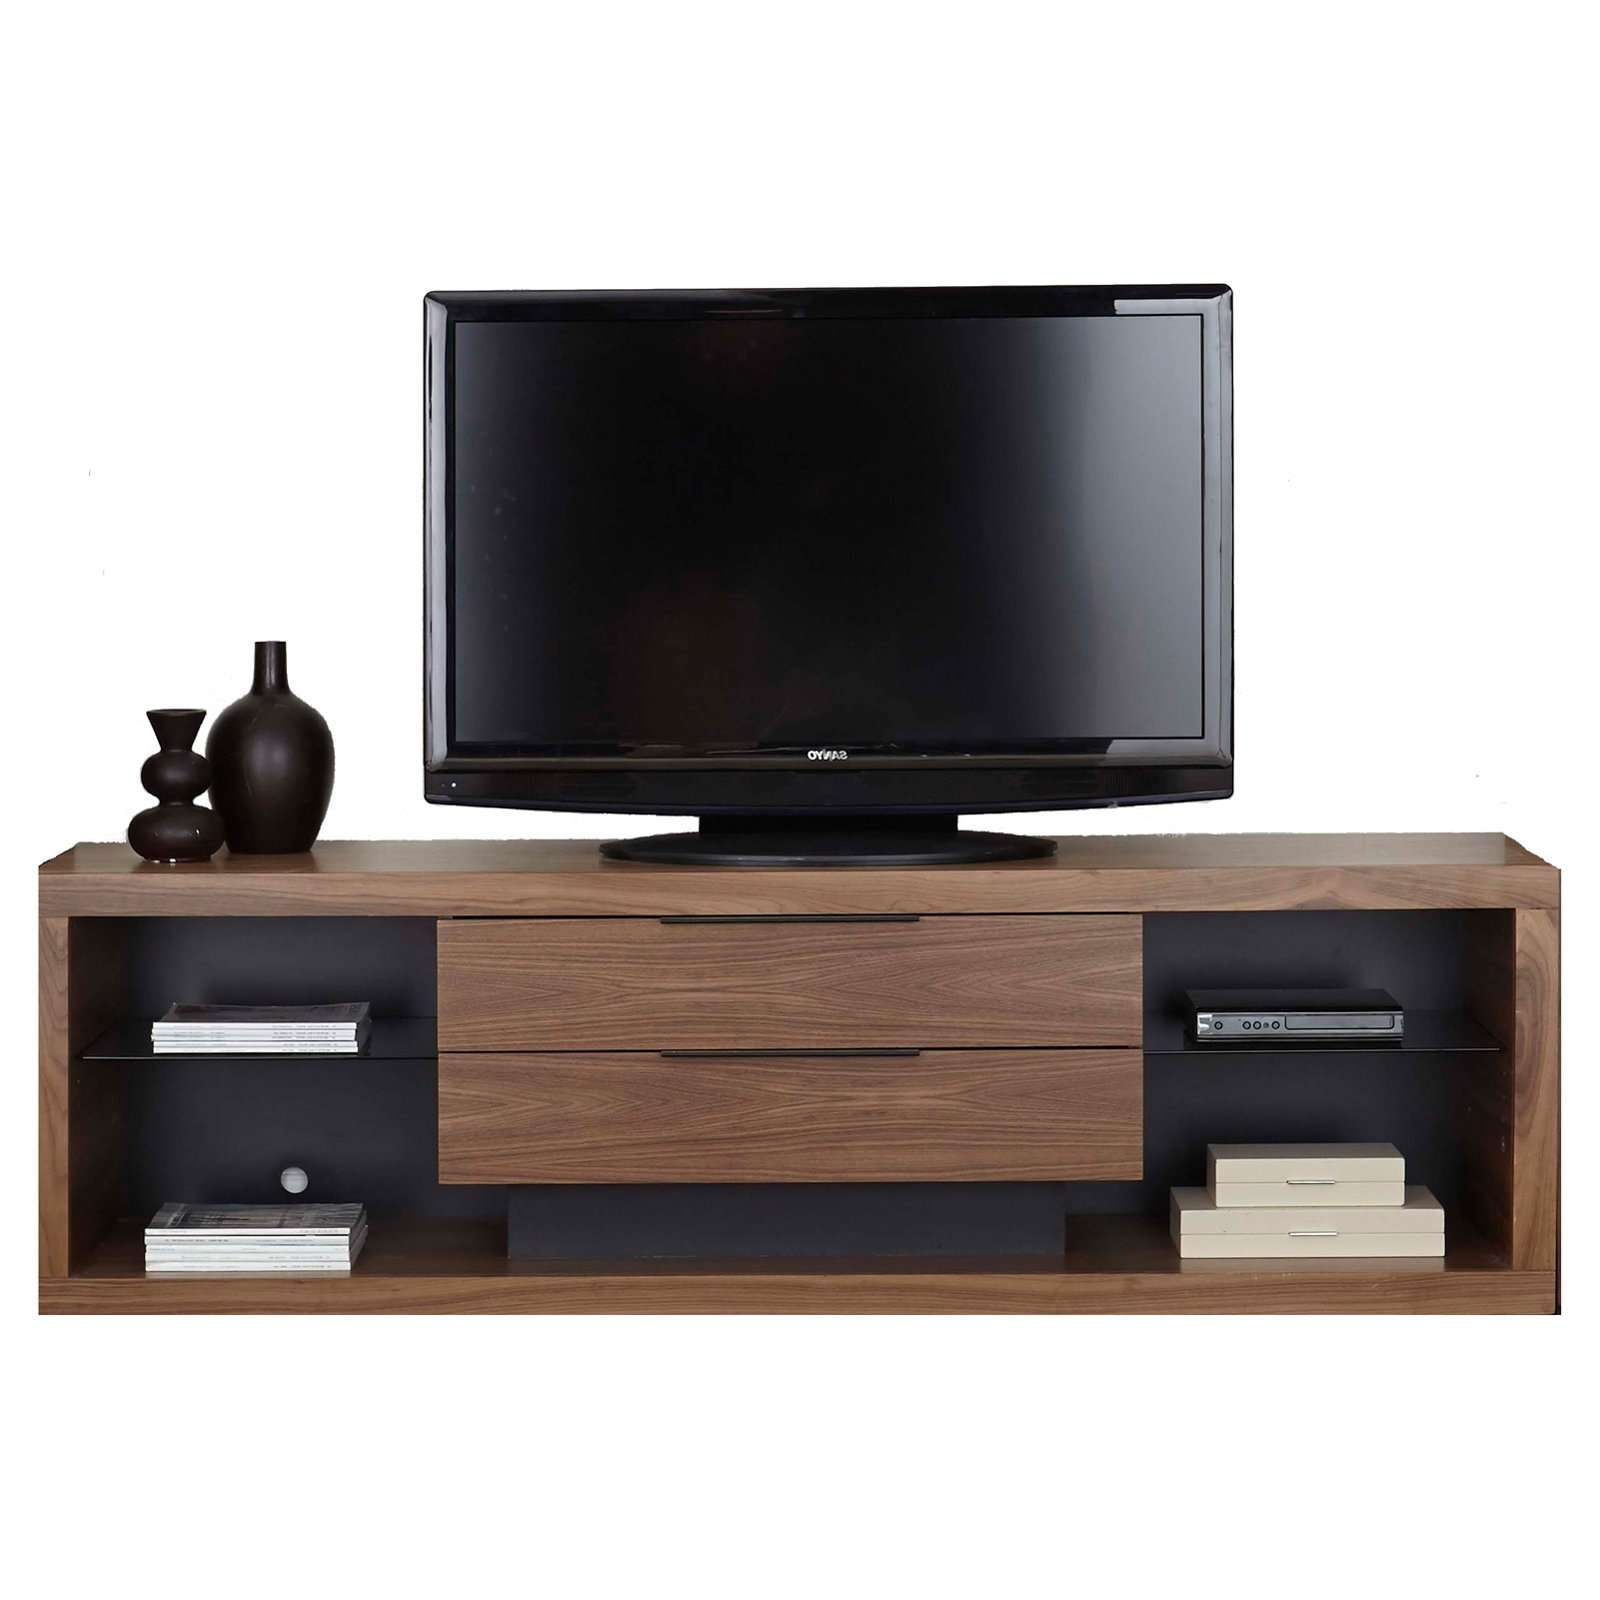 Tv Stand For 80 Inch Tv – Aiyorikane Inside 80 Inch Tv Stands (View 13 of 15)